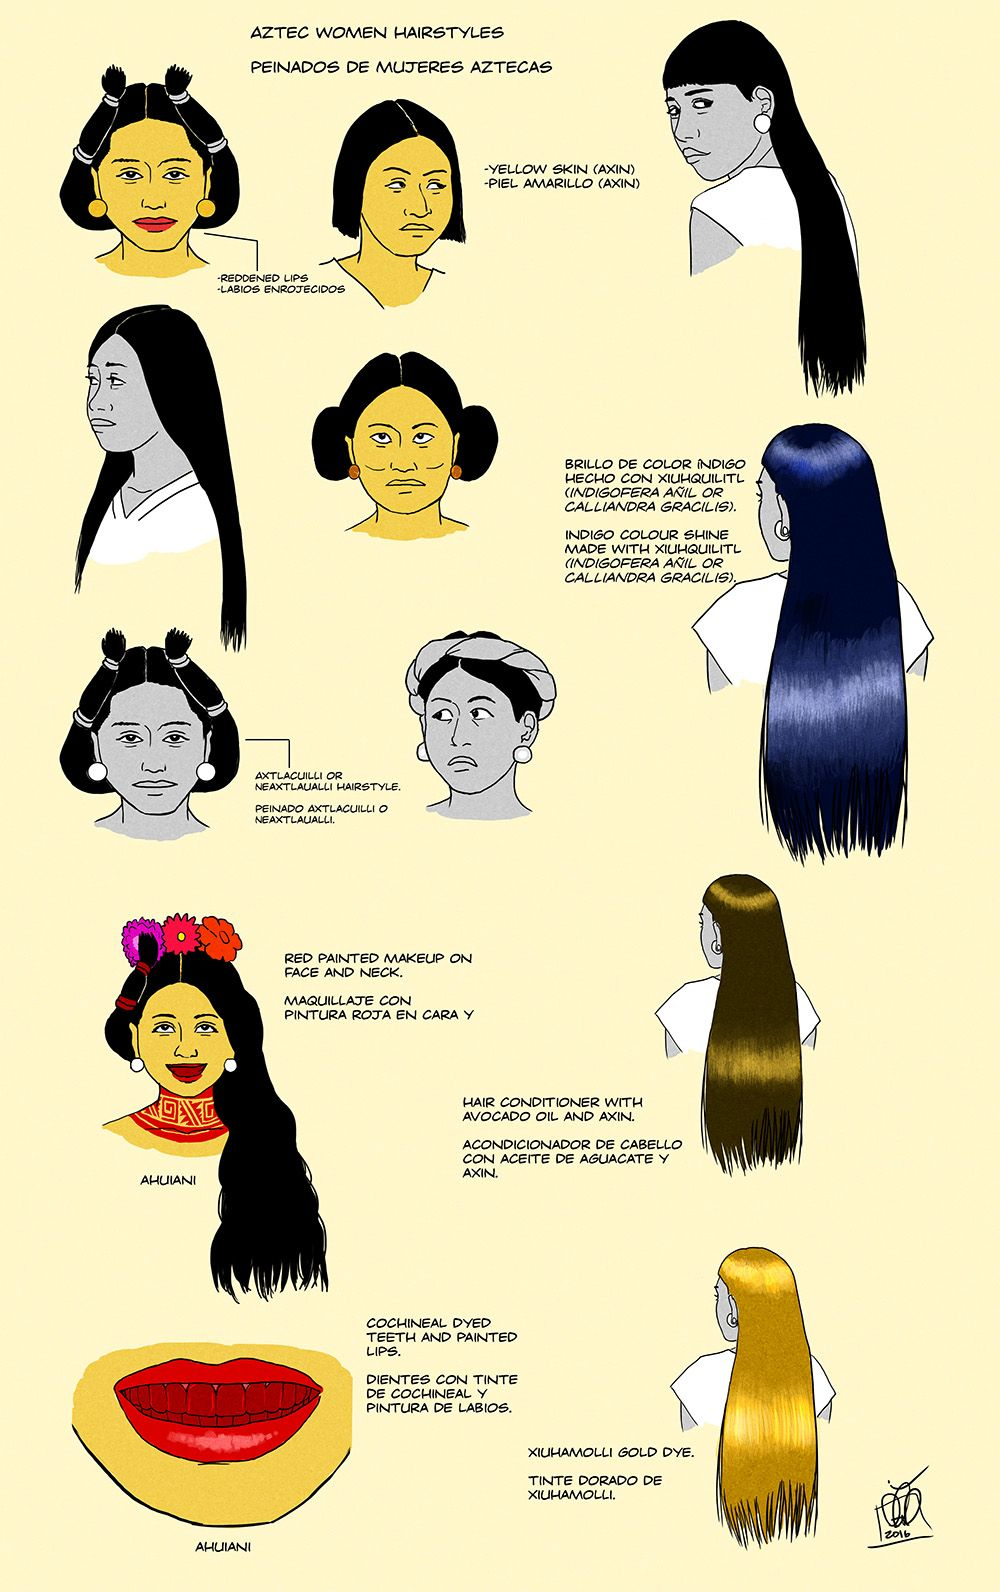 Aztec Women Hairstyles by Kamazotz #aztec